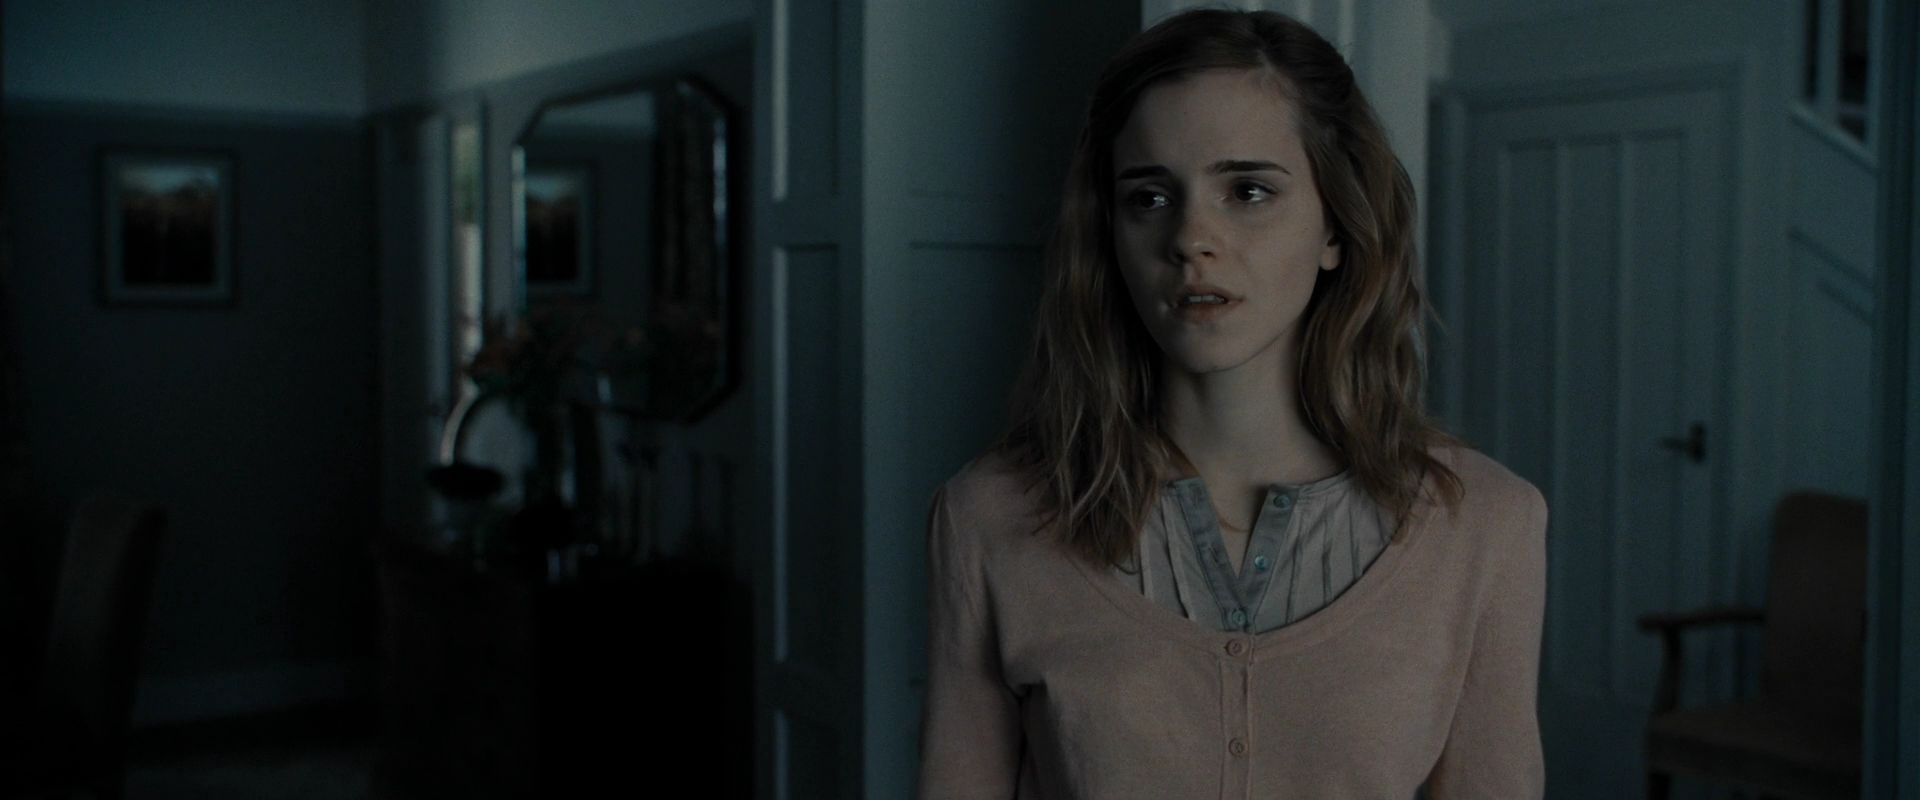 Harry-Potter-and-the-Deathly-Hallows-Part-1-BluRay-emma-watson-20909450-1920-800